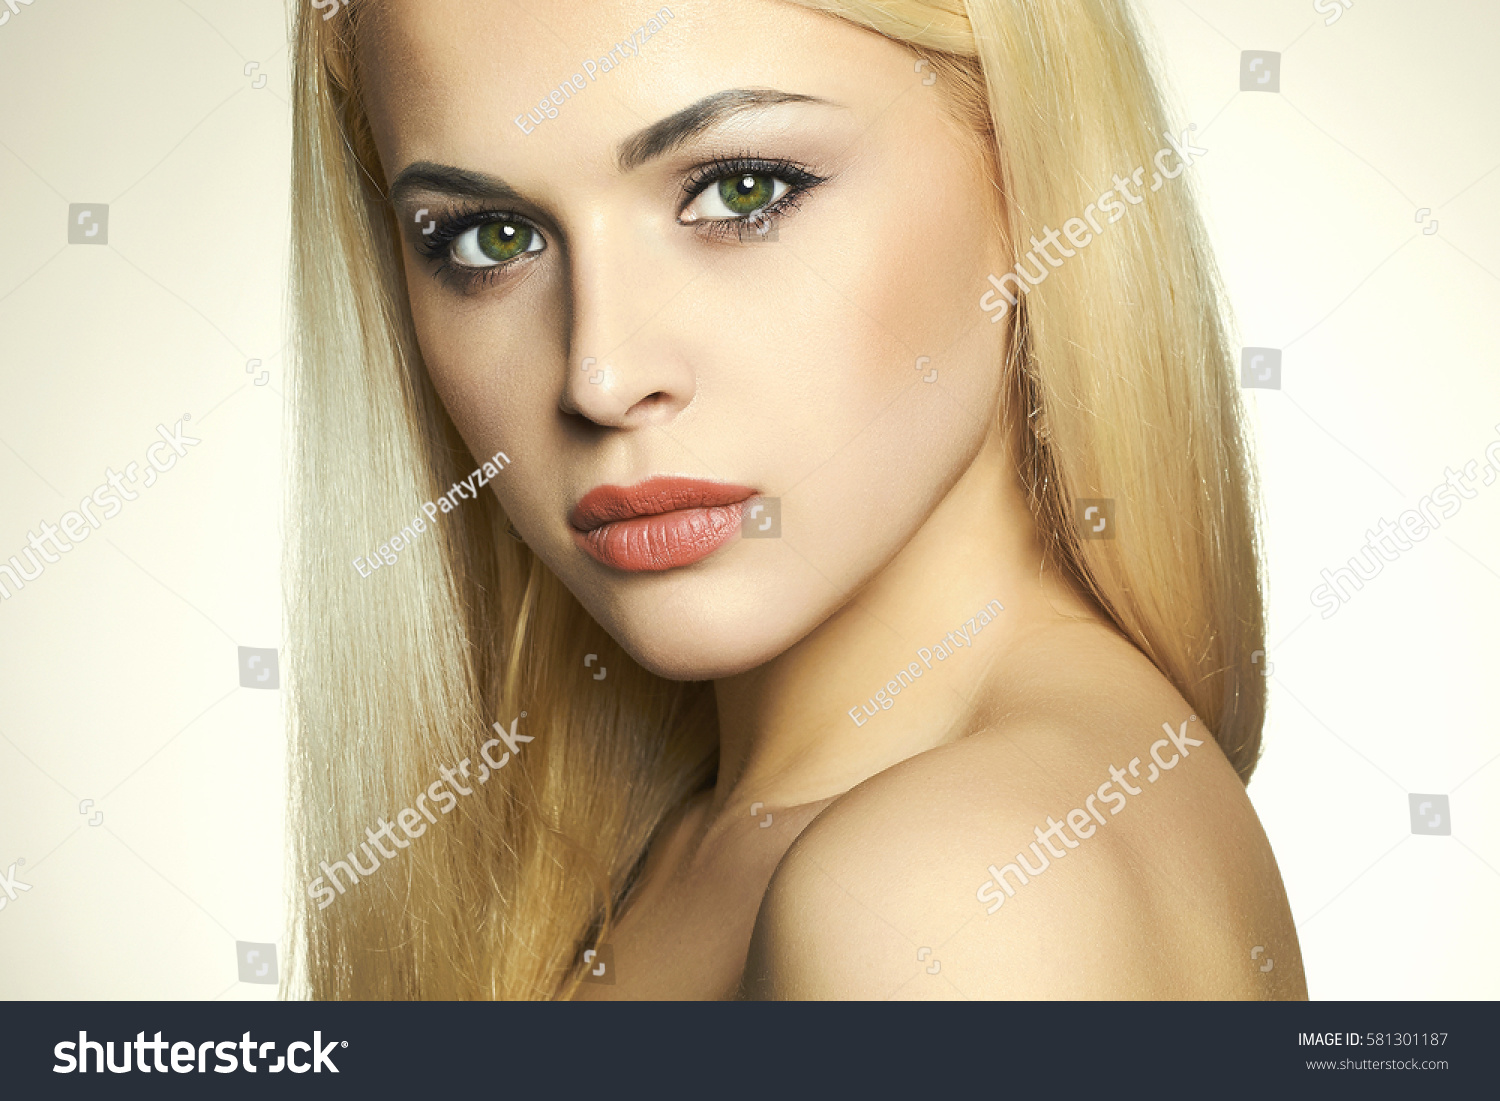 Blonde Girl With Green Eyes